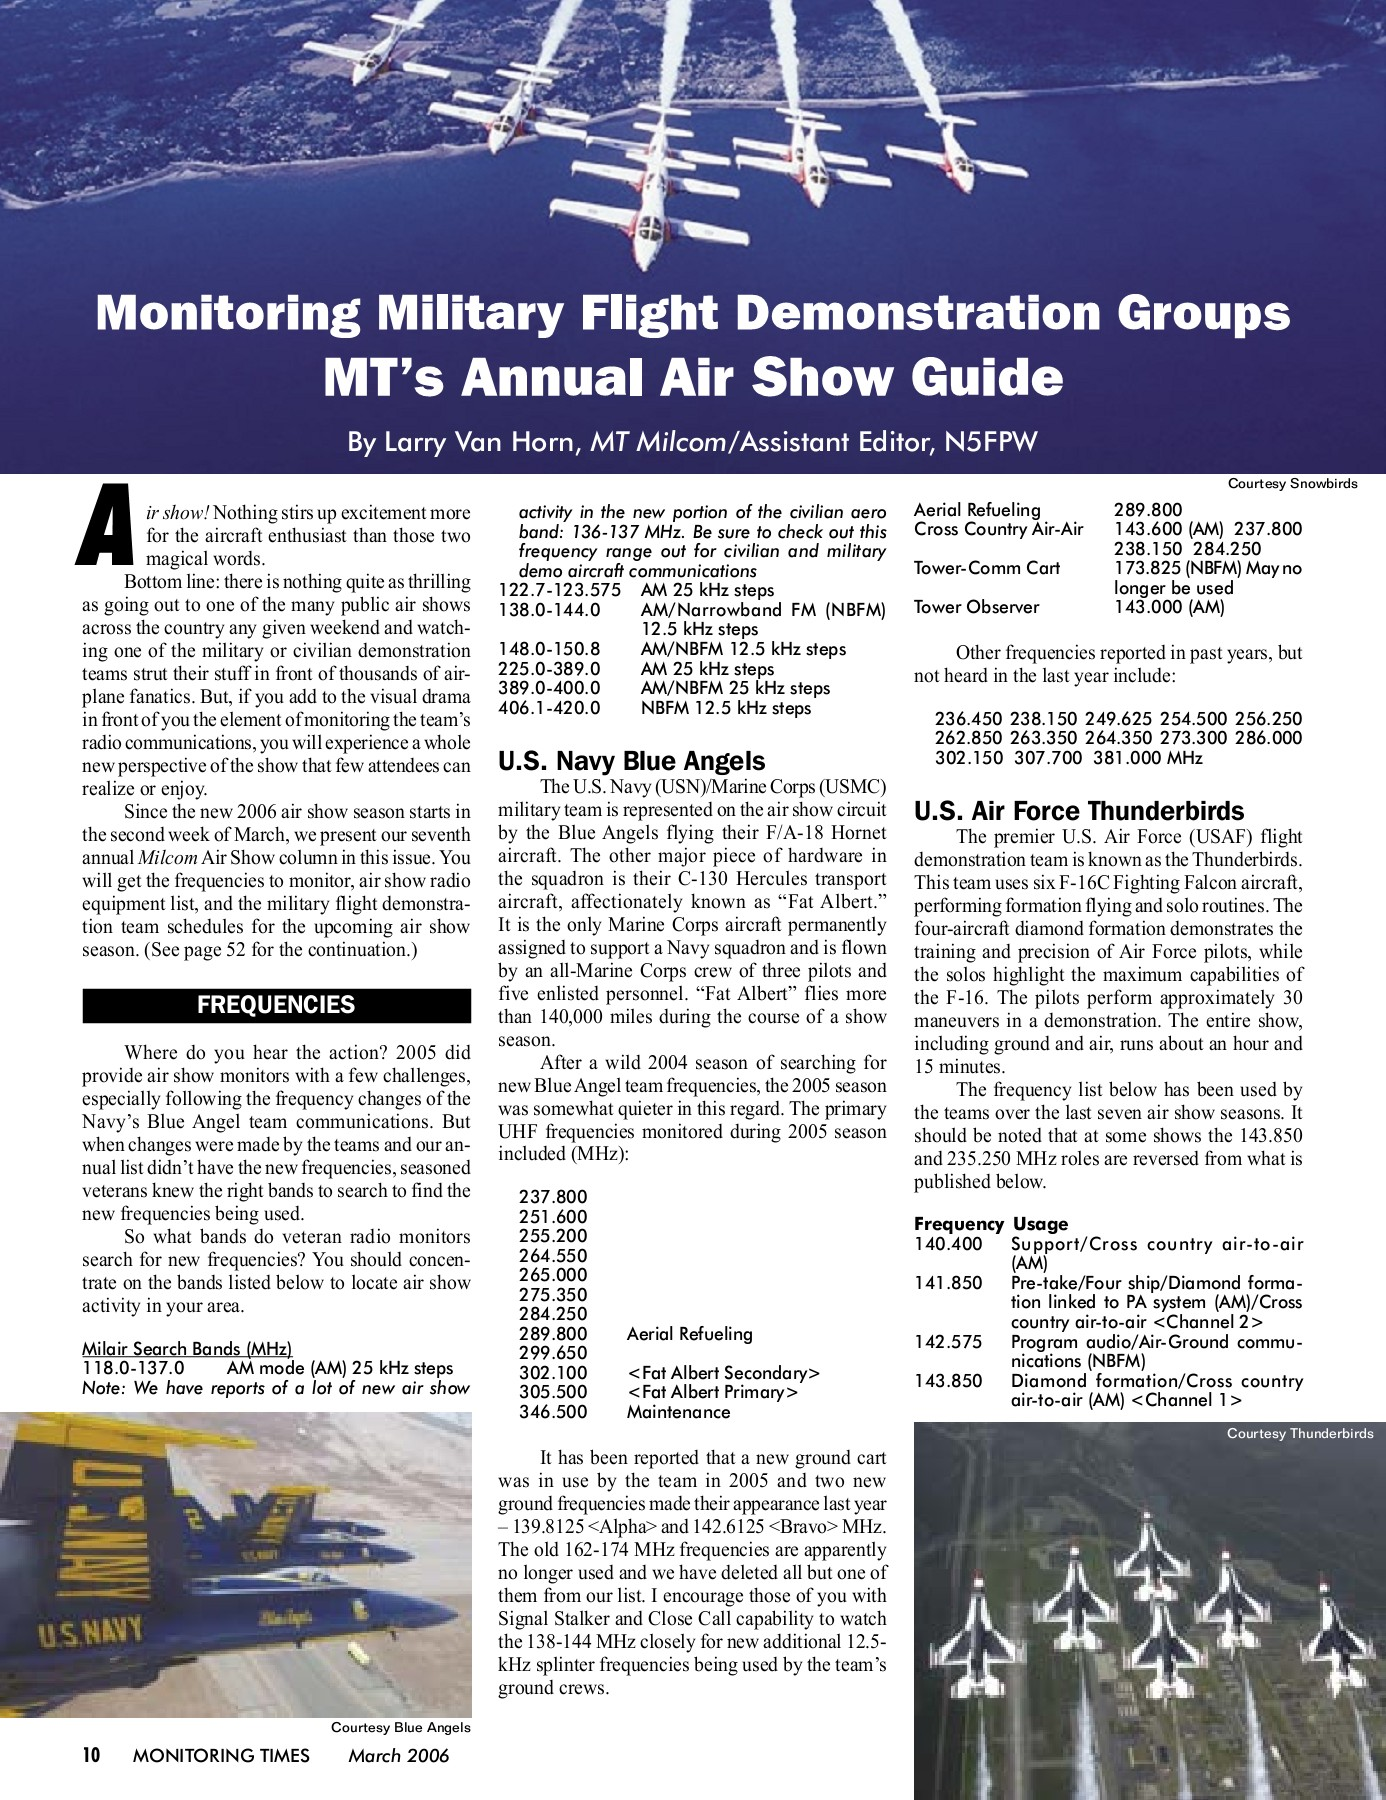 Monitoring Military Flight Demonstration Groups MT's